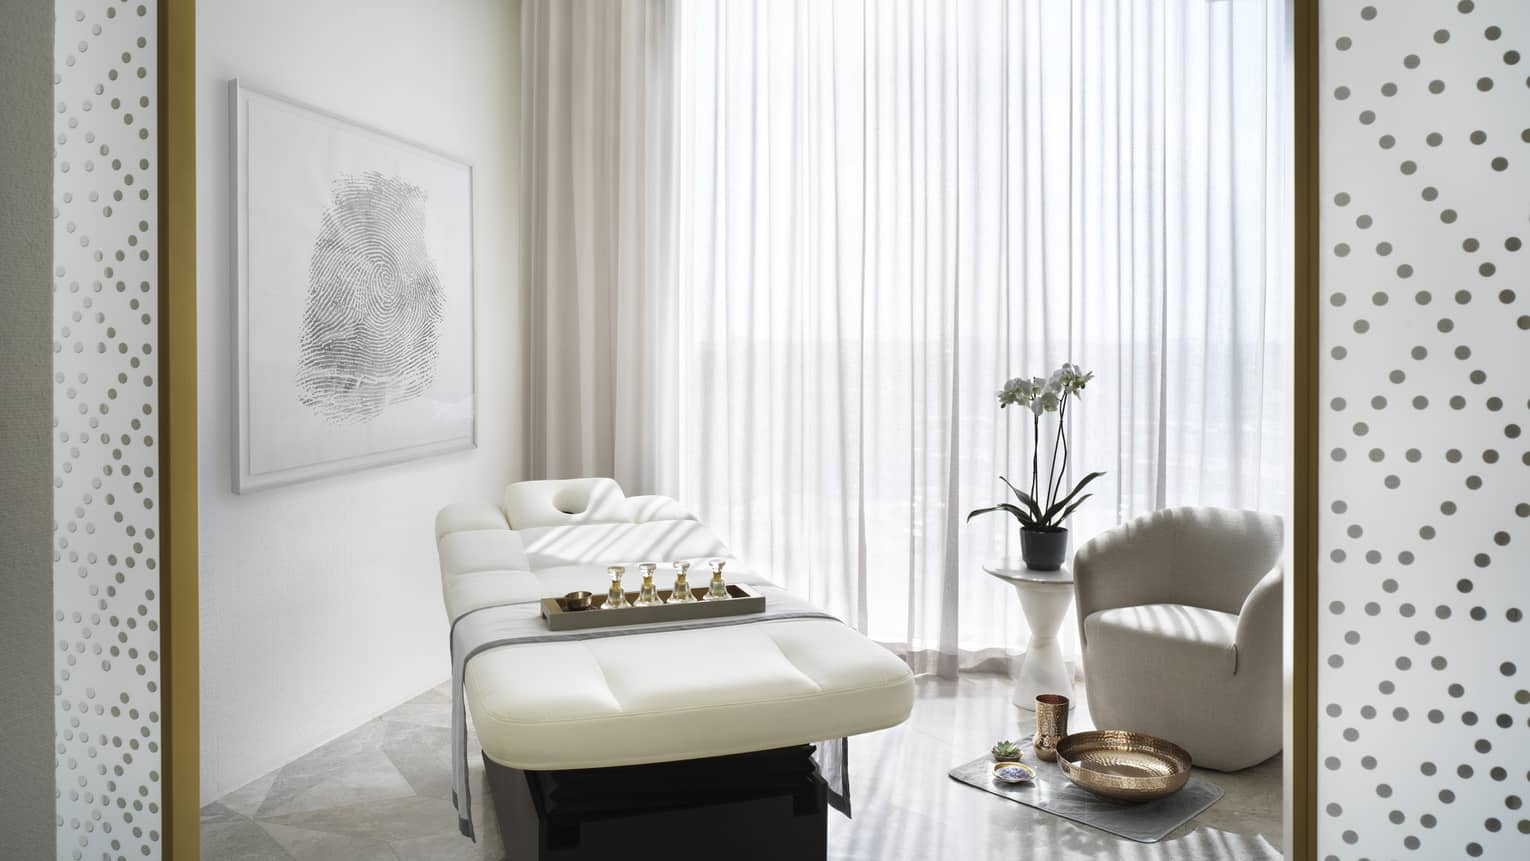 Spa room with a white massage table and white chair, next to a large window covered by a sheer curtain